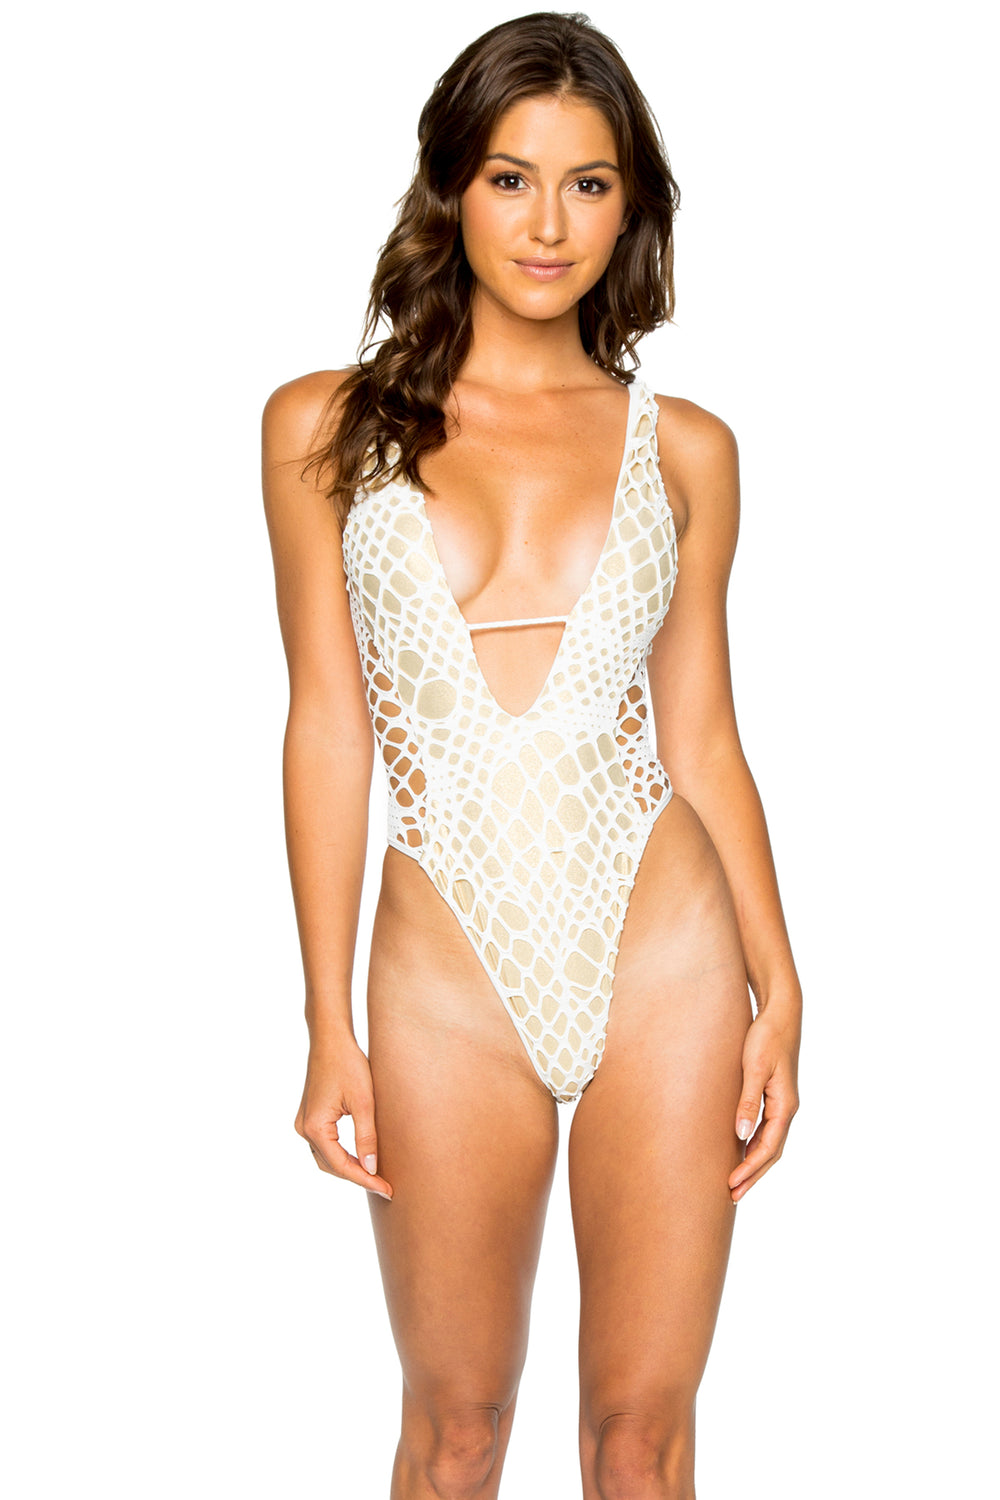 LA CABAÑA - High Leg Cut Out One Piece • Off White